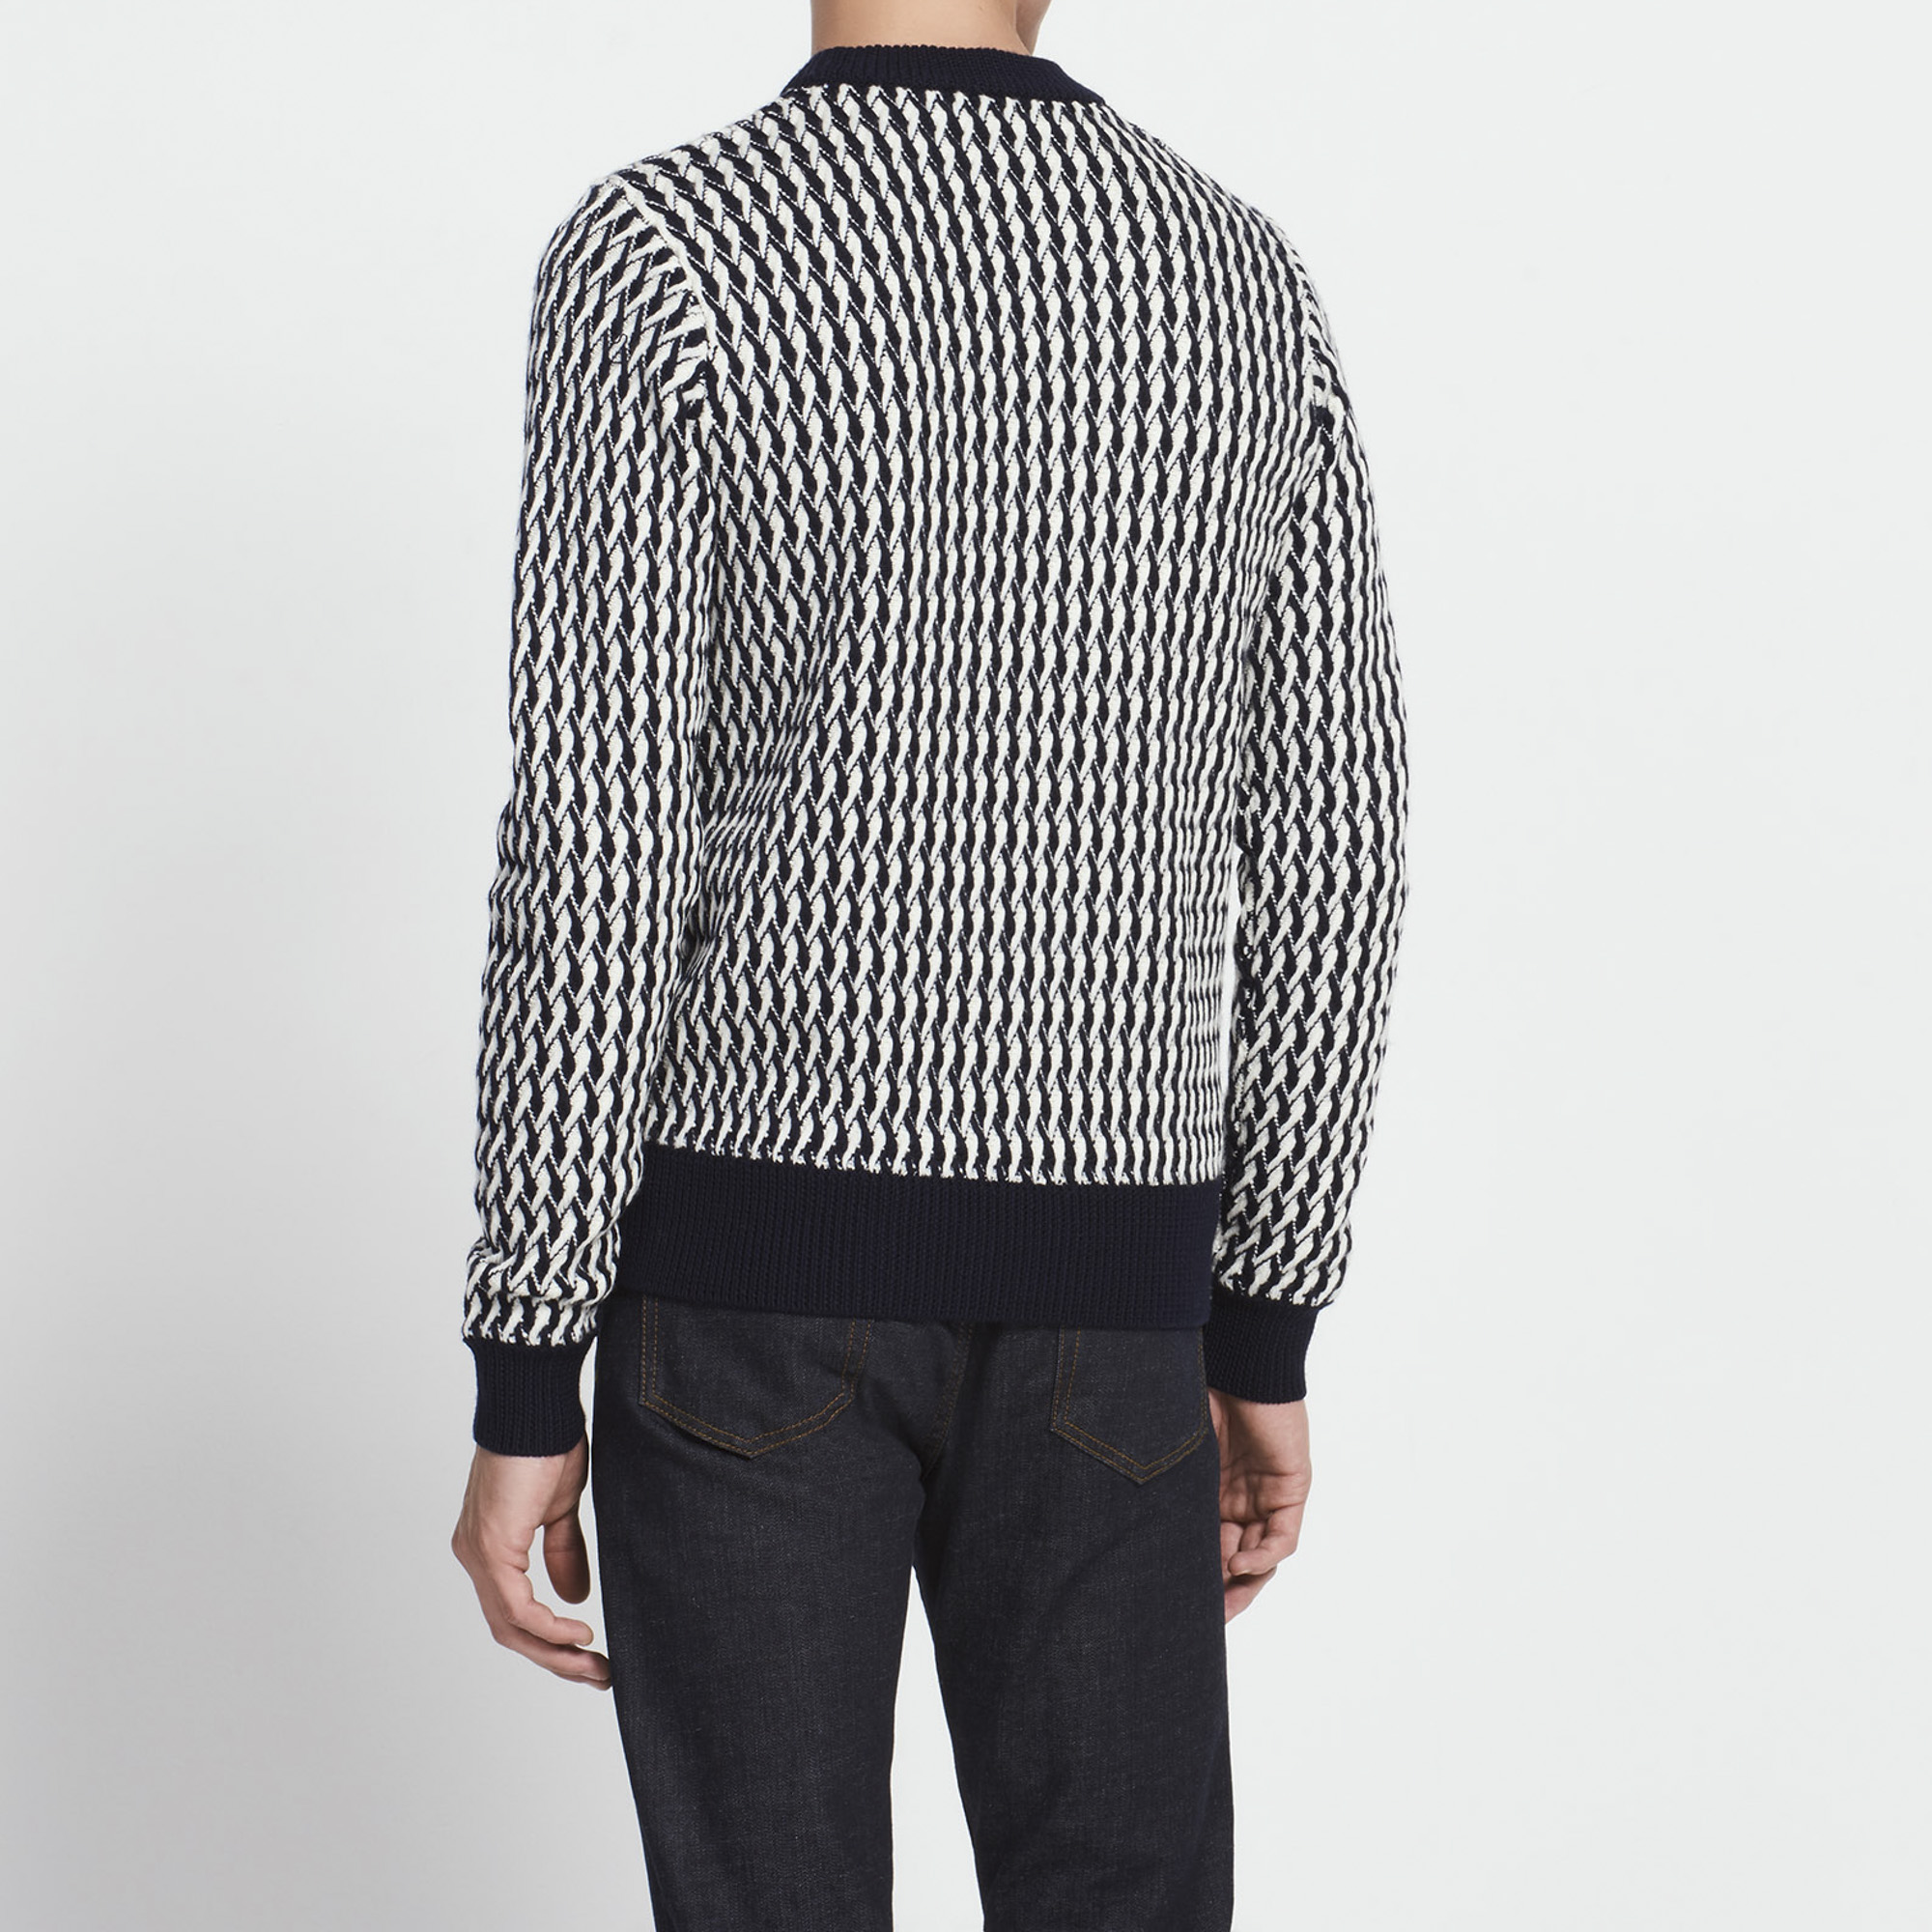 Two-tone cable knit sweater - Sweaters & Cardigans - Sandro-paris.com